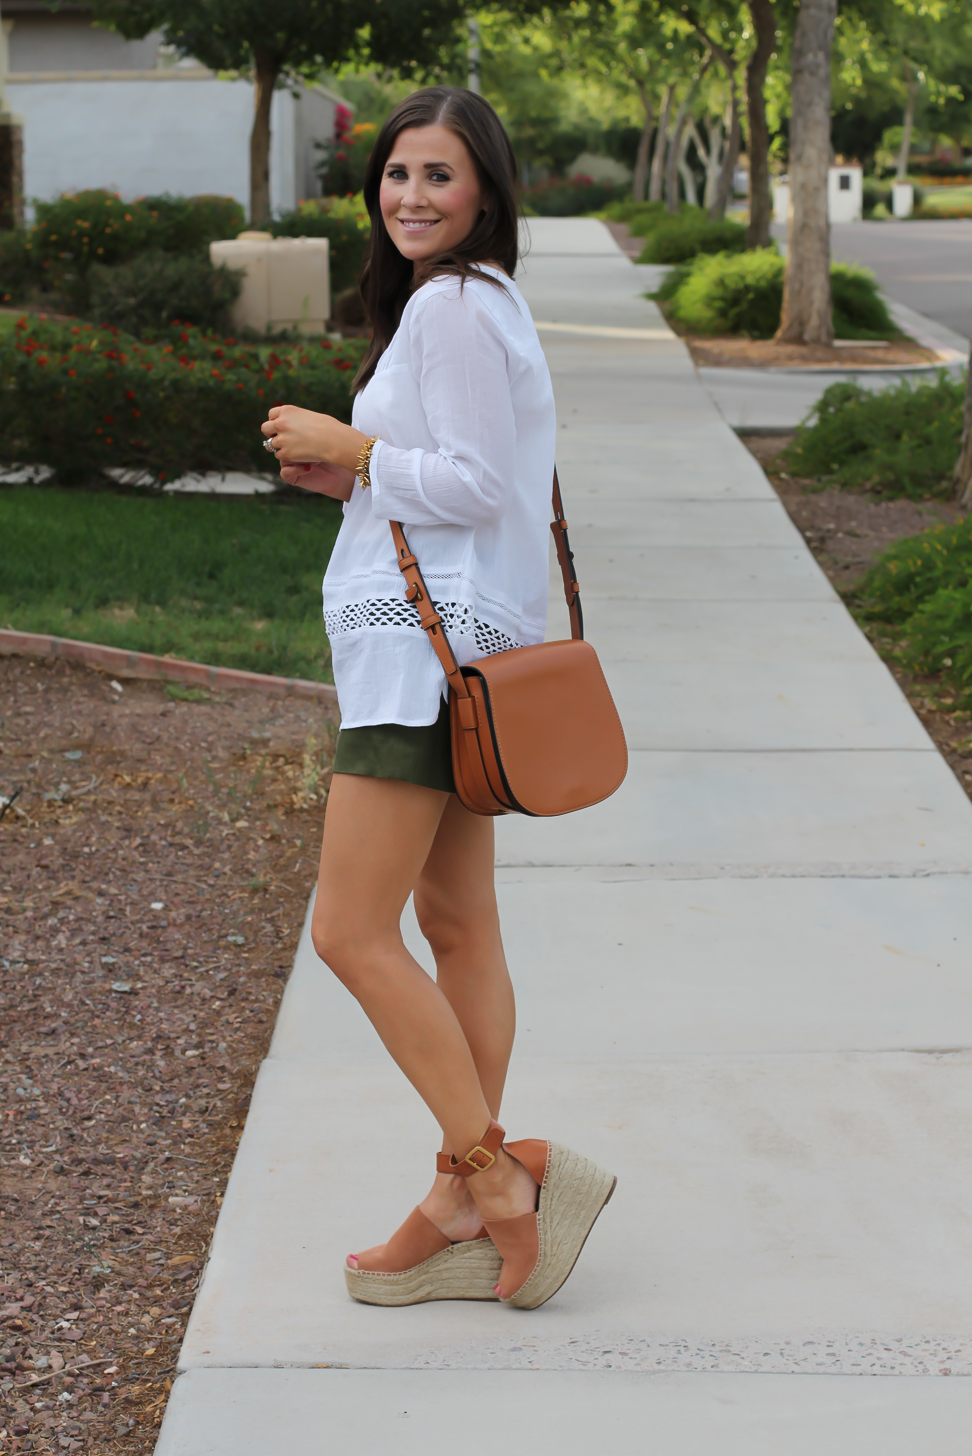 Gauze White Lace Tunic, Green Linen Shorts, Brown Suede Espadrilles, Brown Leather Crossbody Bag, Old Navy, J.Crew, Chloe, Tory Burch 3